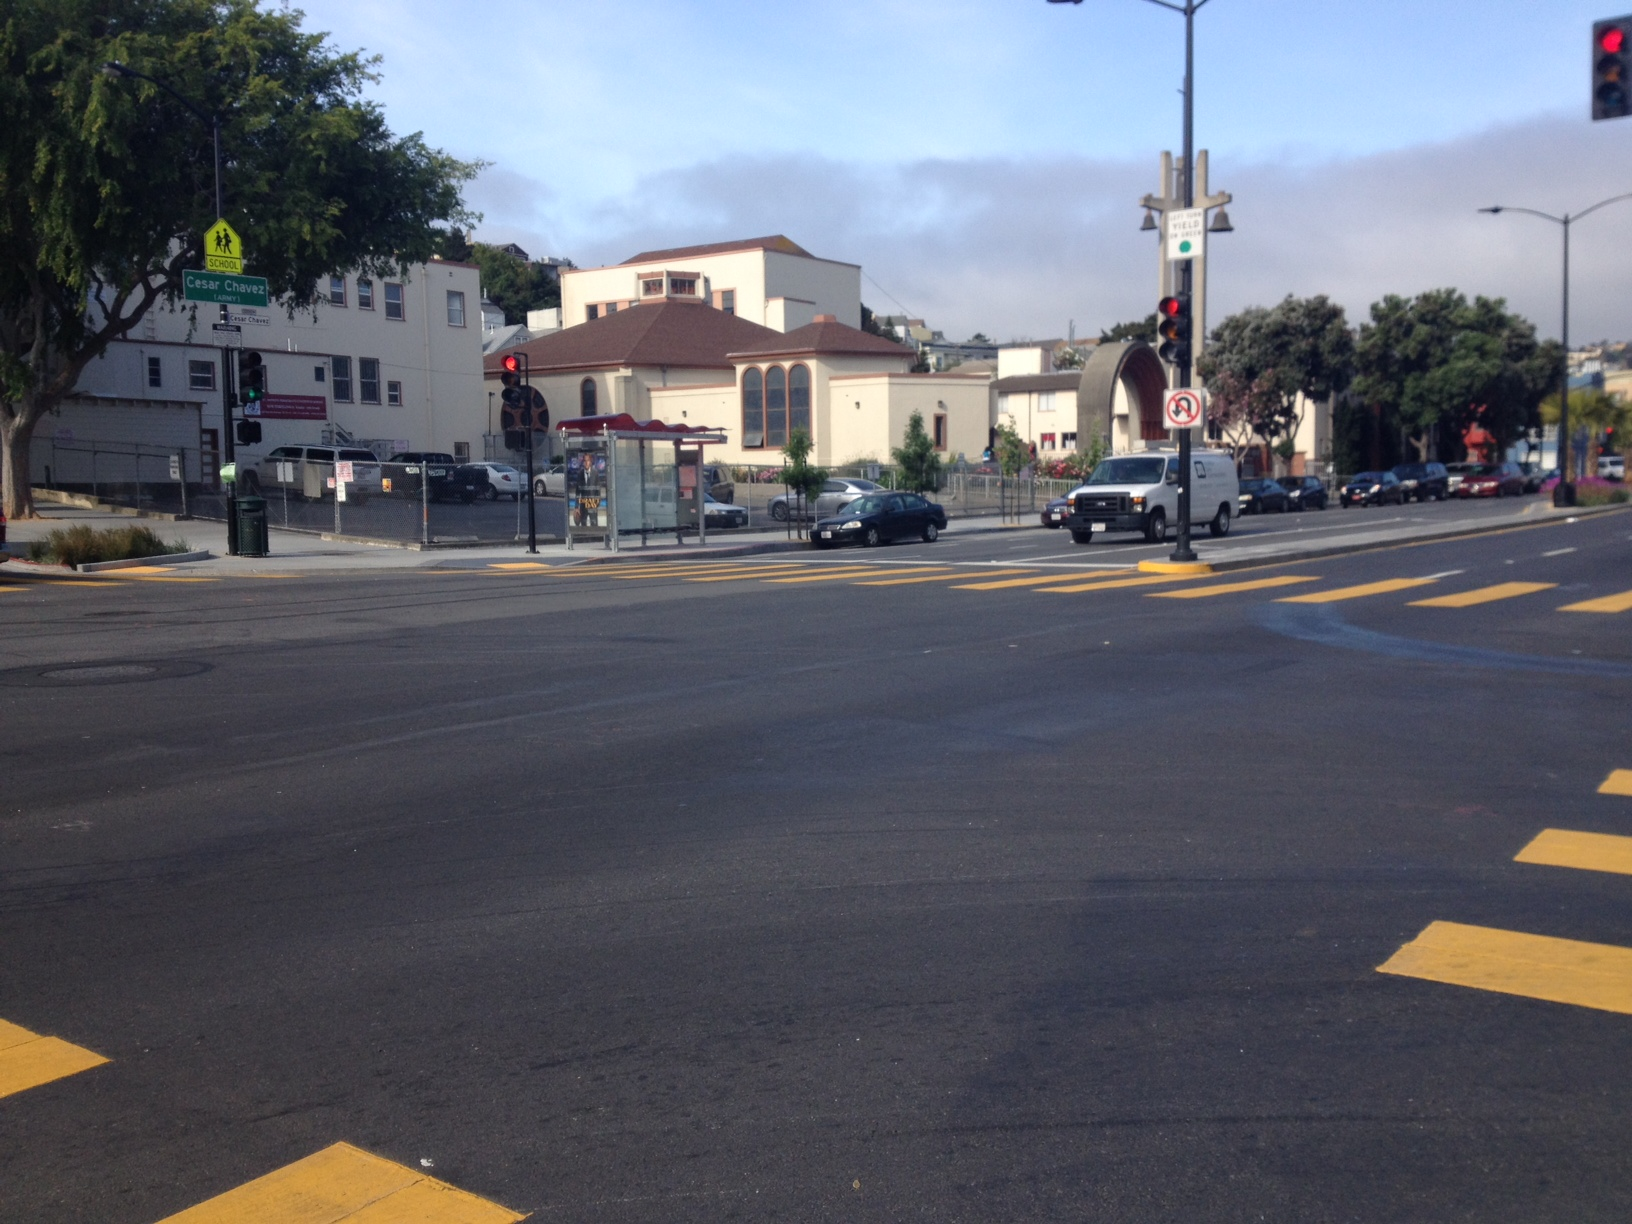 The intersection where the accident took place. Photo by Lydia Chávez